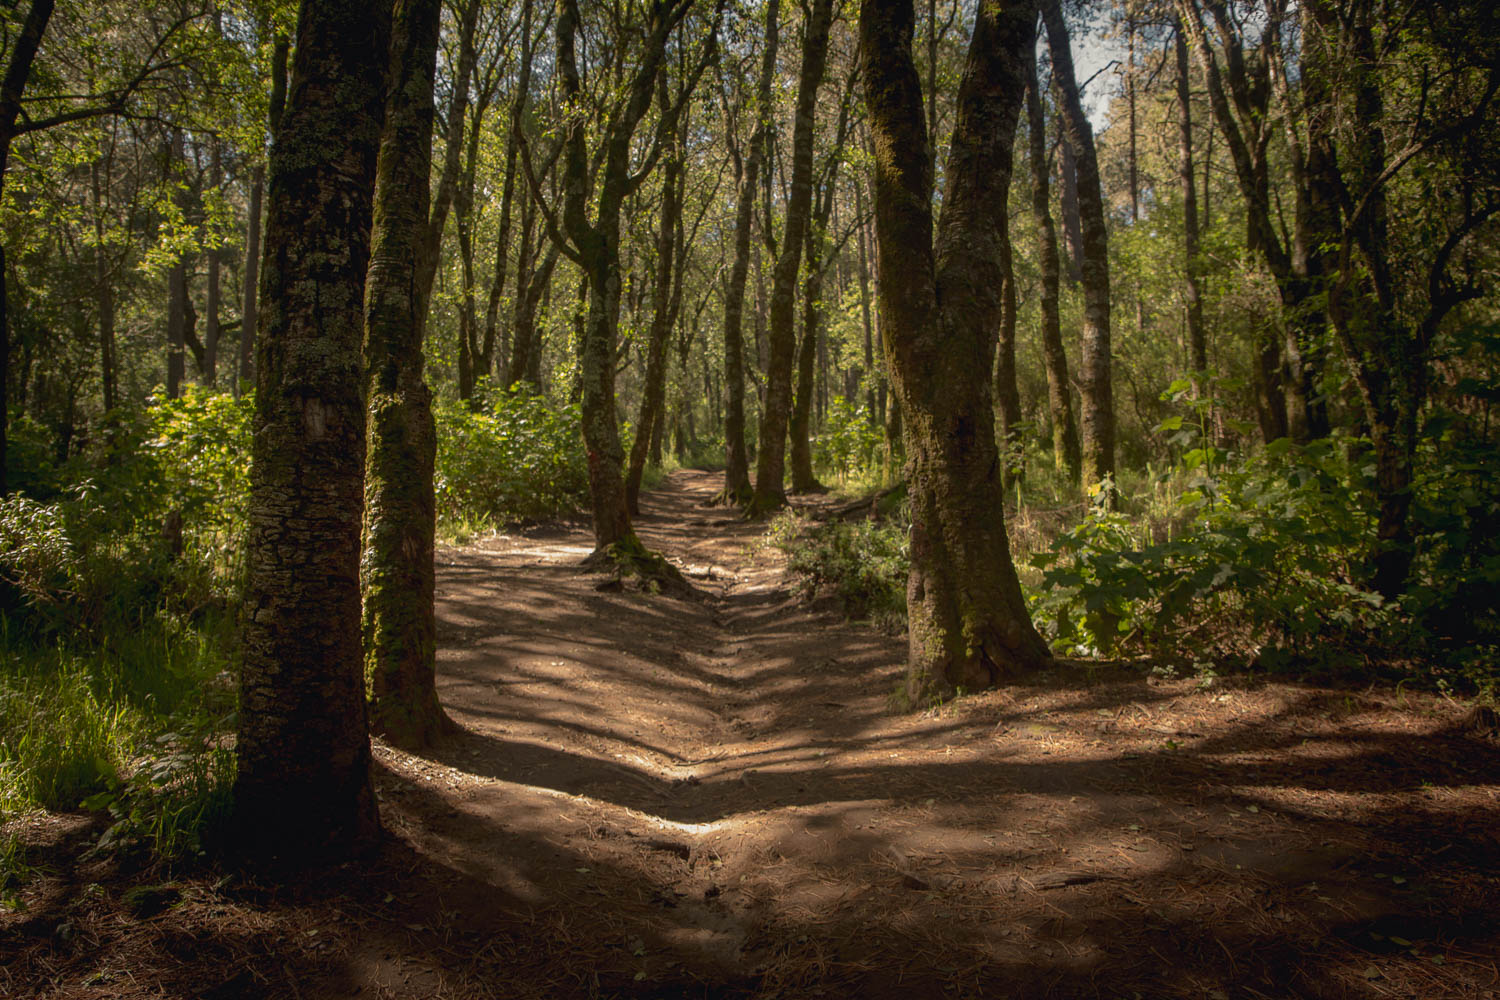 Path through the forest, Volcán Malinche.